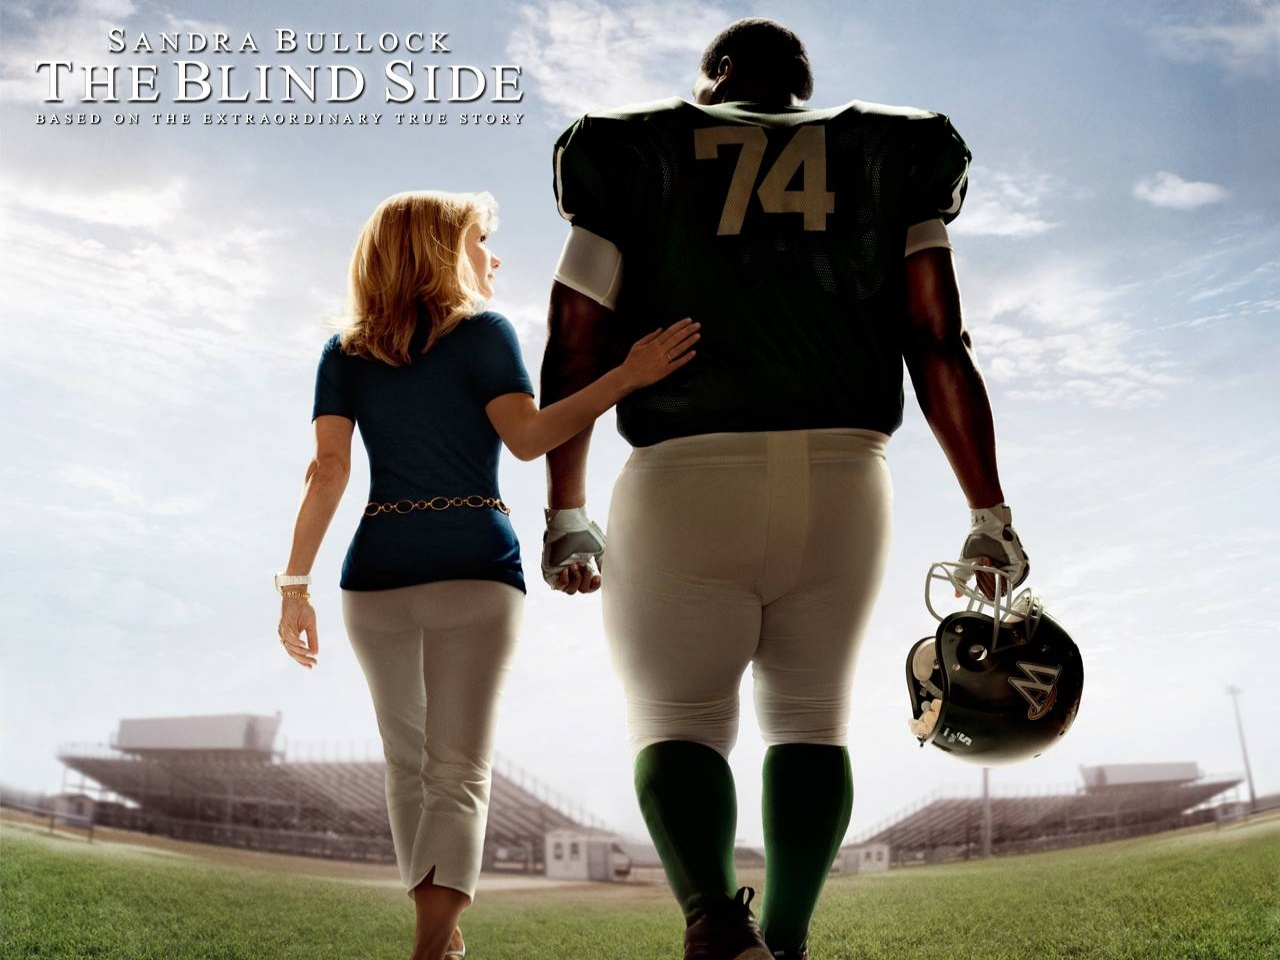 Watch the blind side 2009 movie full download free.